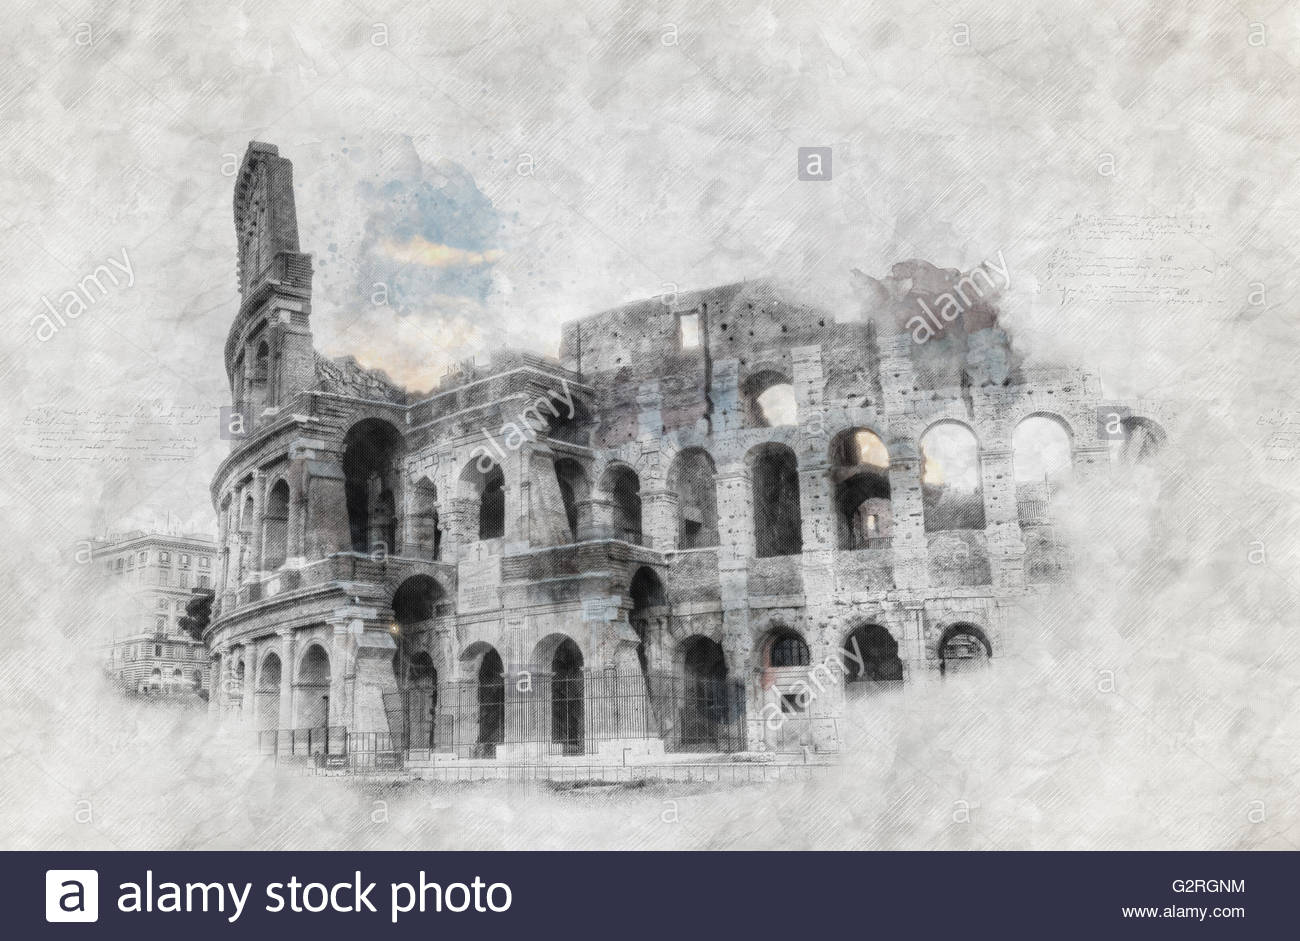 1300x941 Hand Drawing Or Sketch Of The Colosseum In Rome Stock Photo